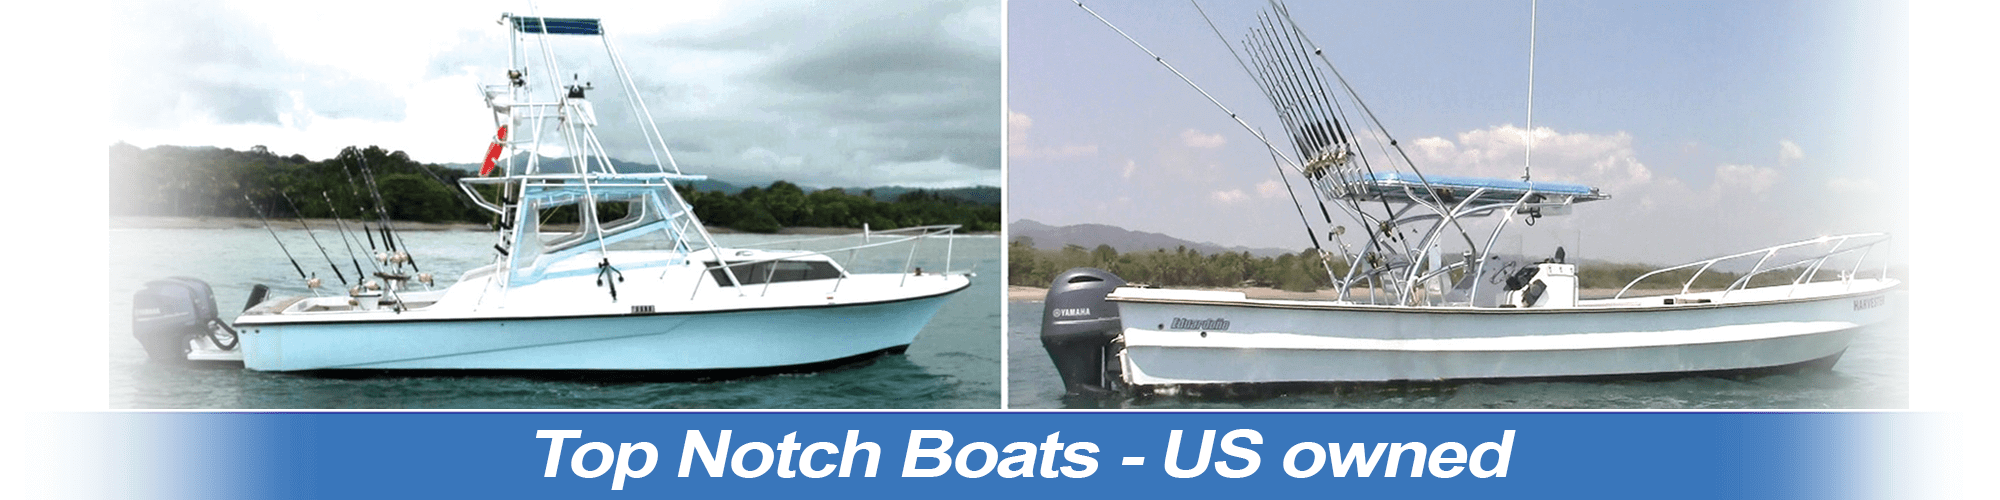 Top Notch boats - US Owned